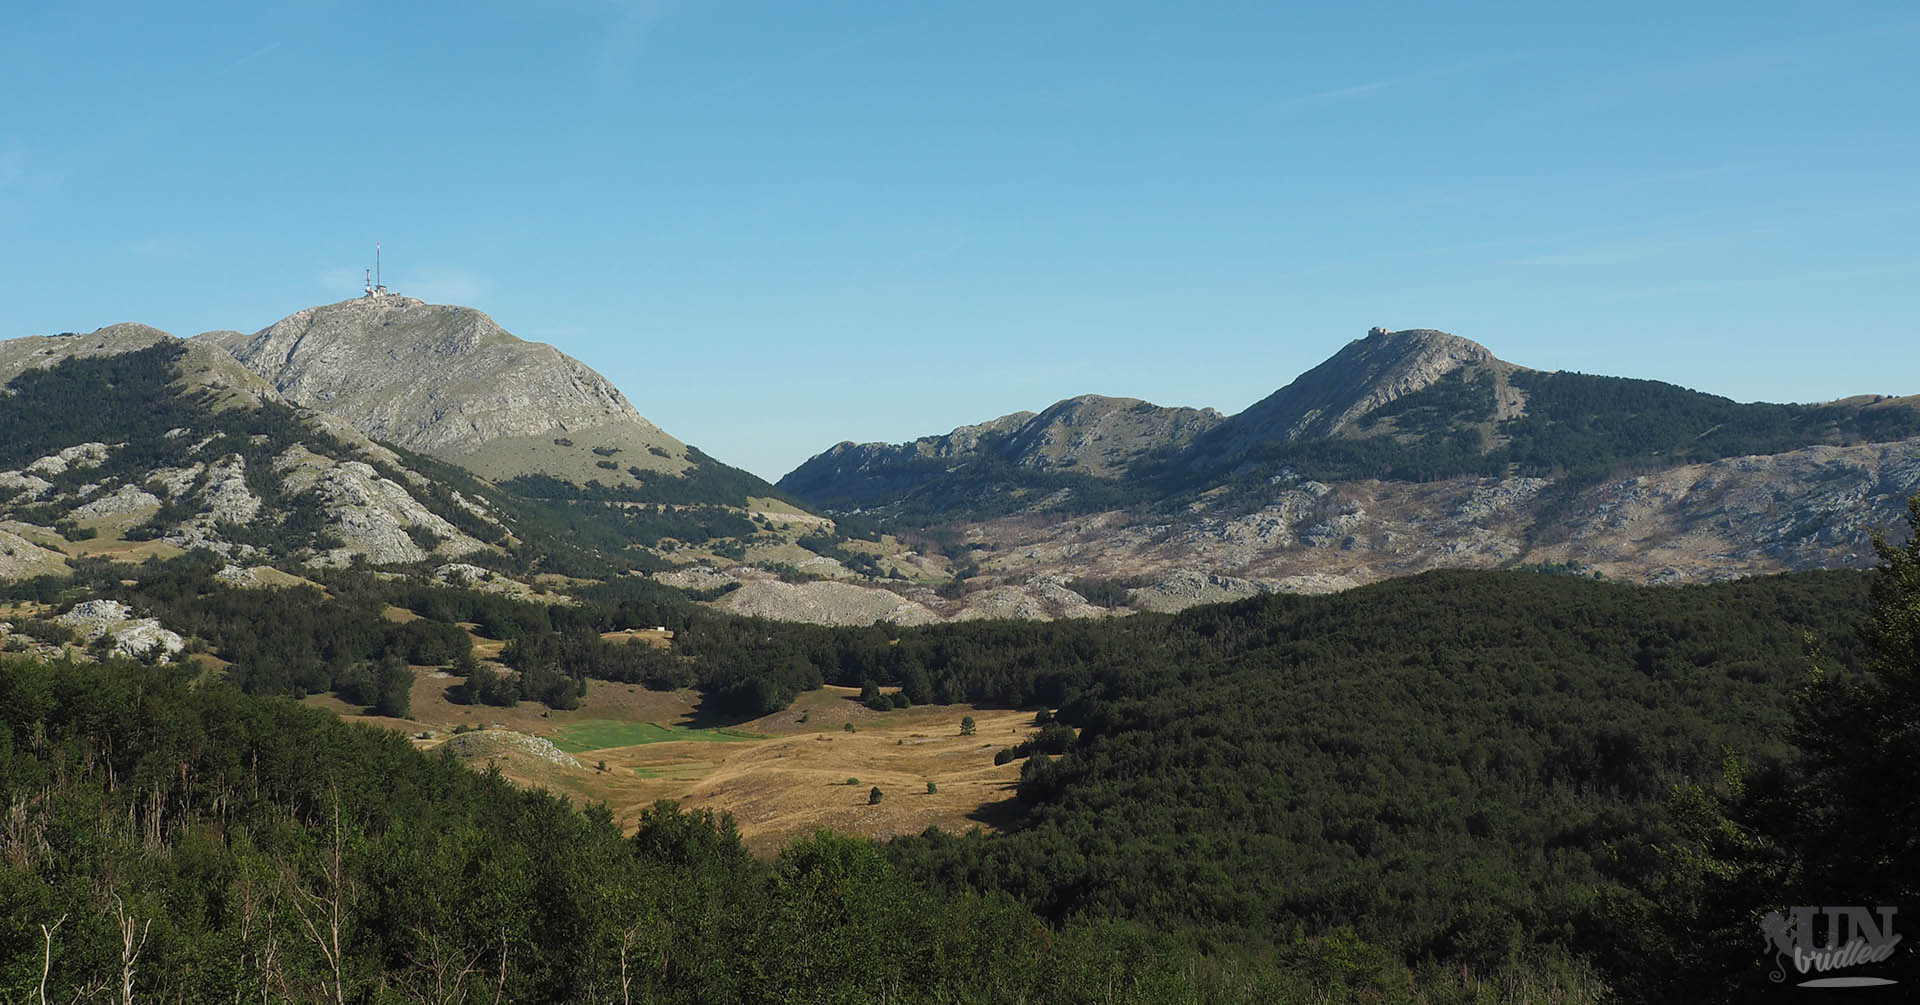 View of the tallest peaks from a hiking trail in Lovcen National Park